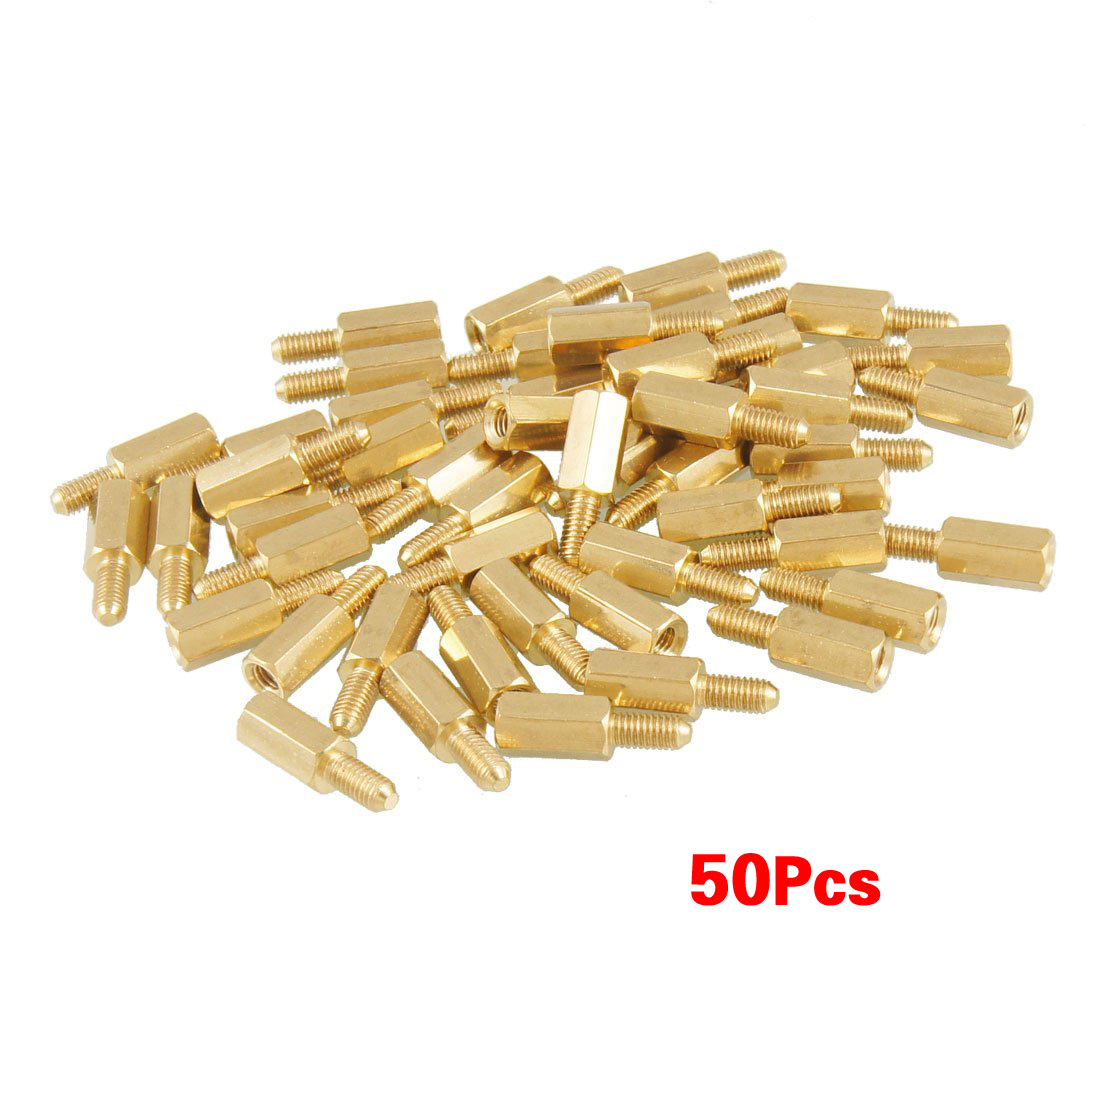 Promotion! 50 Pcs Brass Screw Thread PCB Stand-off Spacer M3 Male X M3 Female 6mm